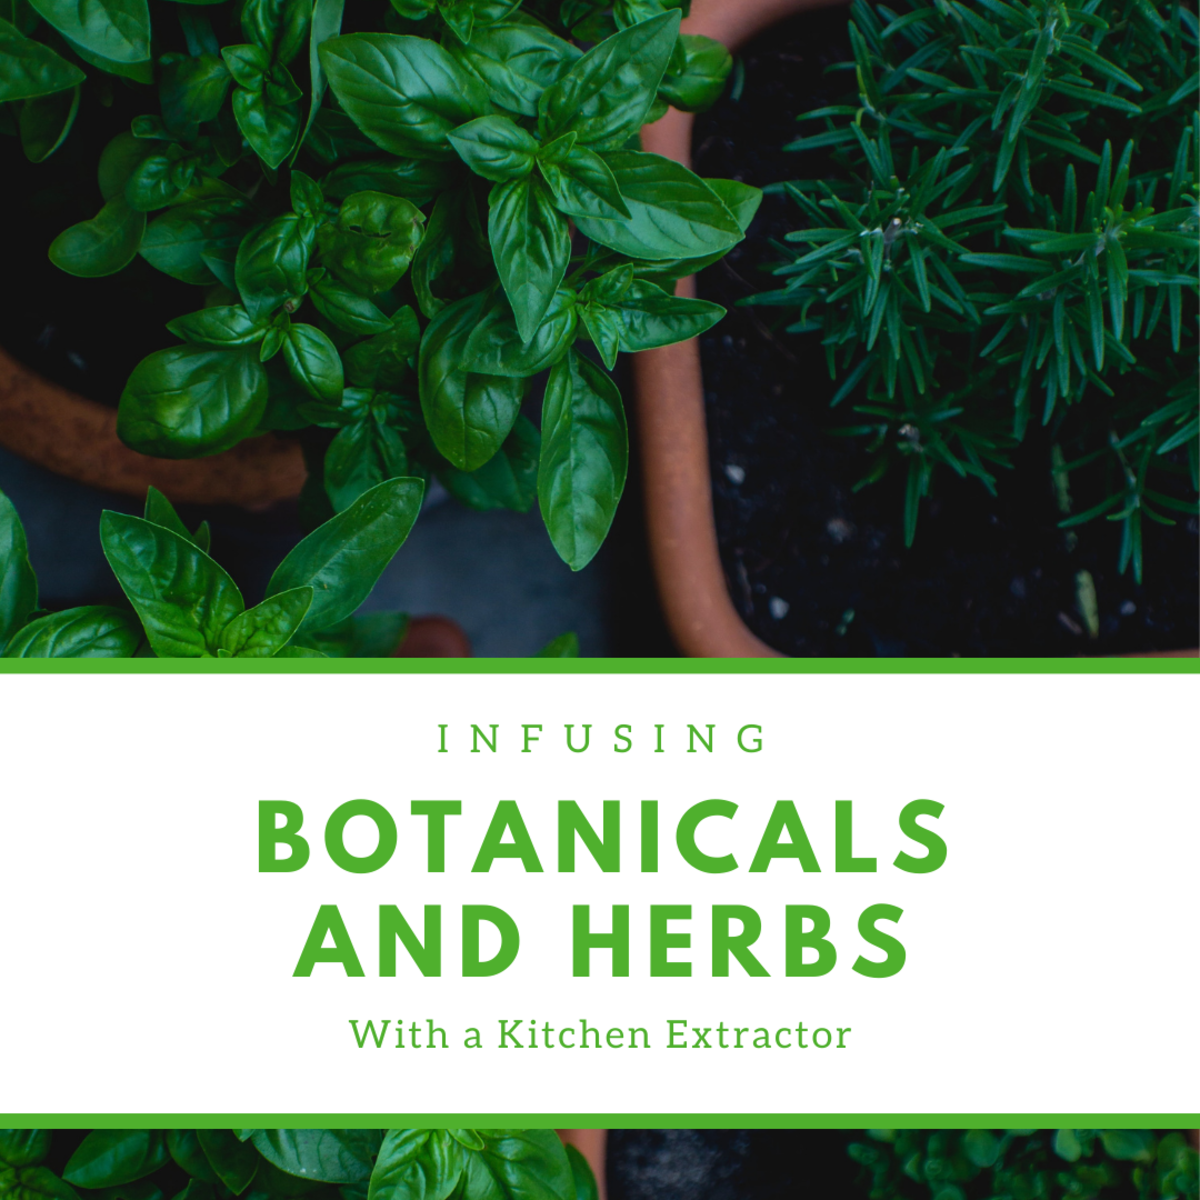 Infuse your own botanicals and herbs at home!